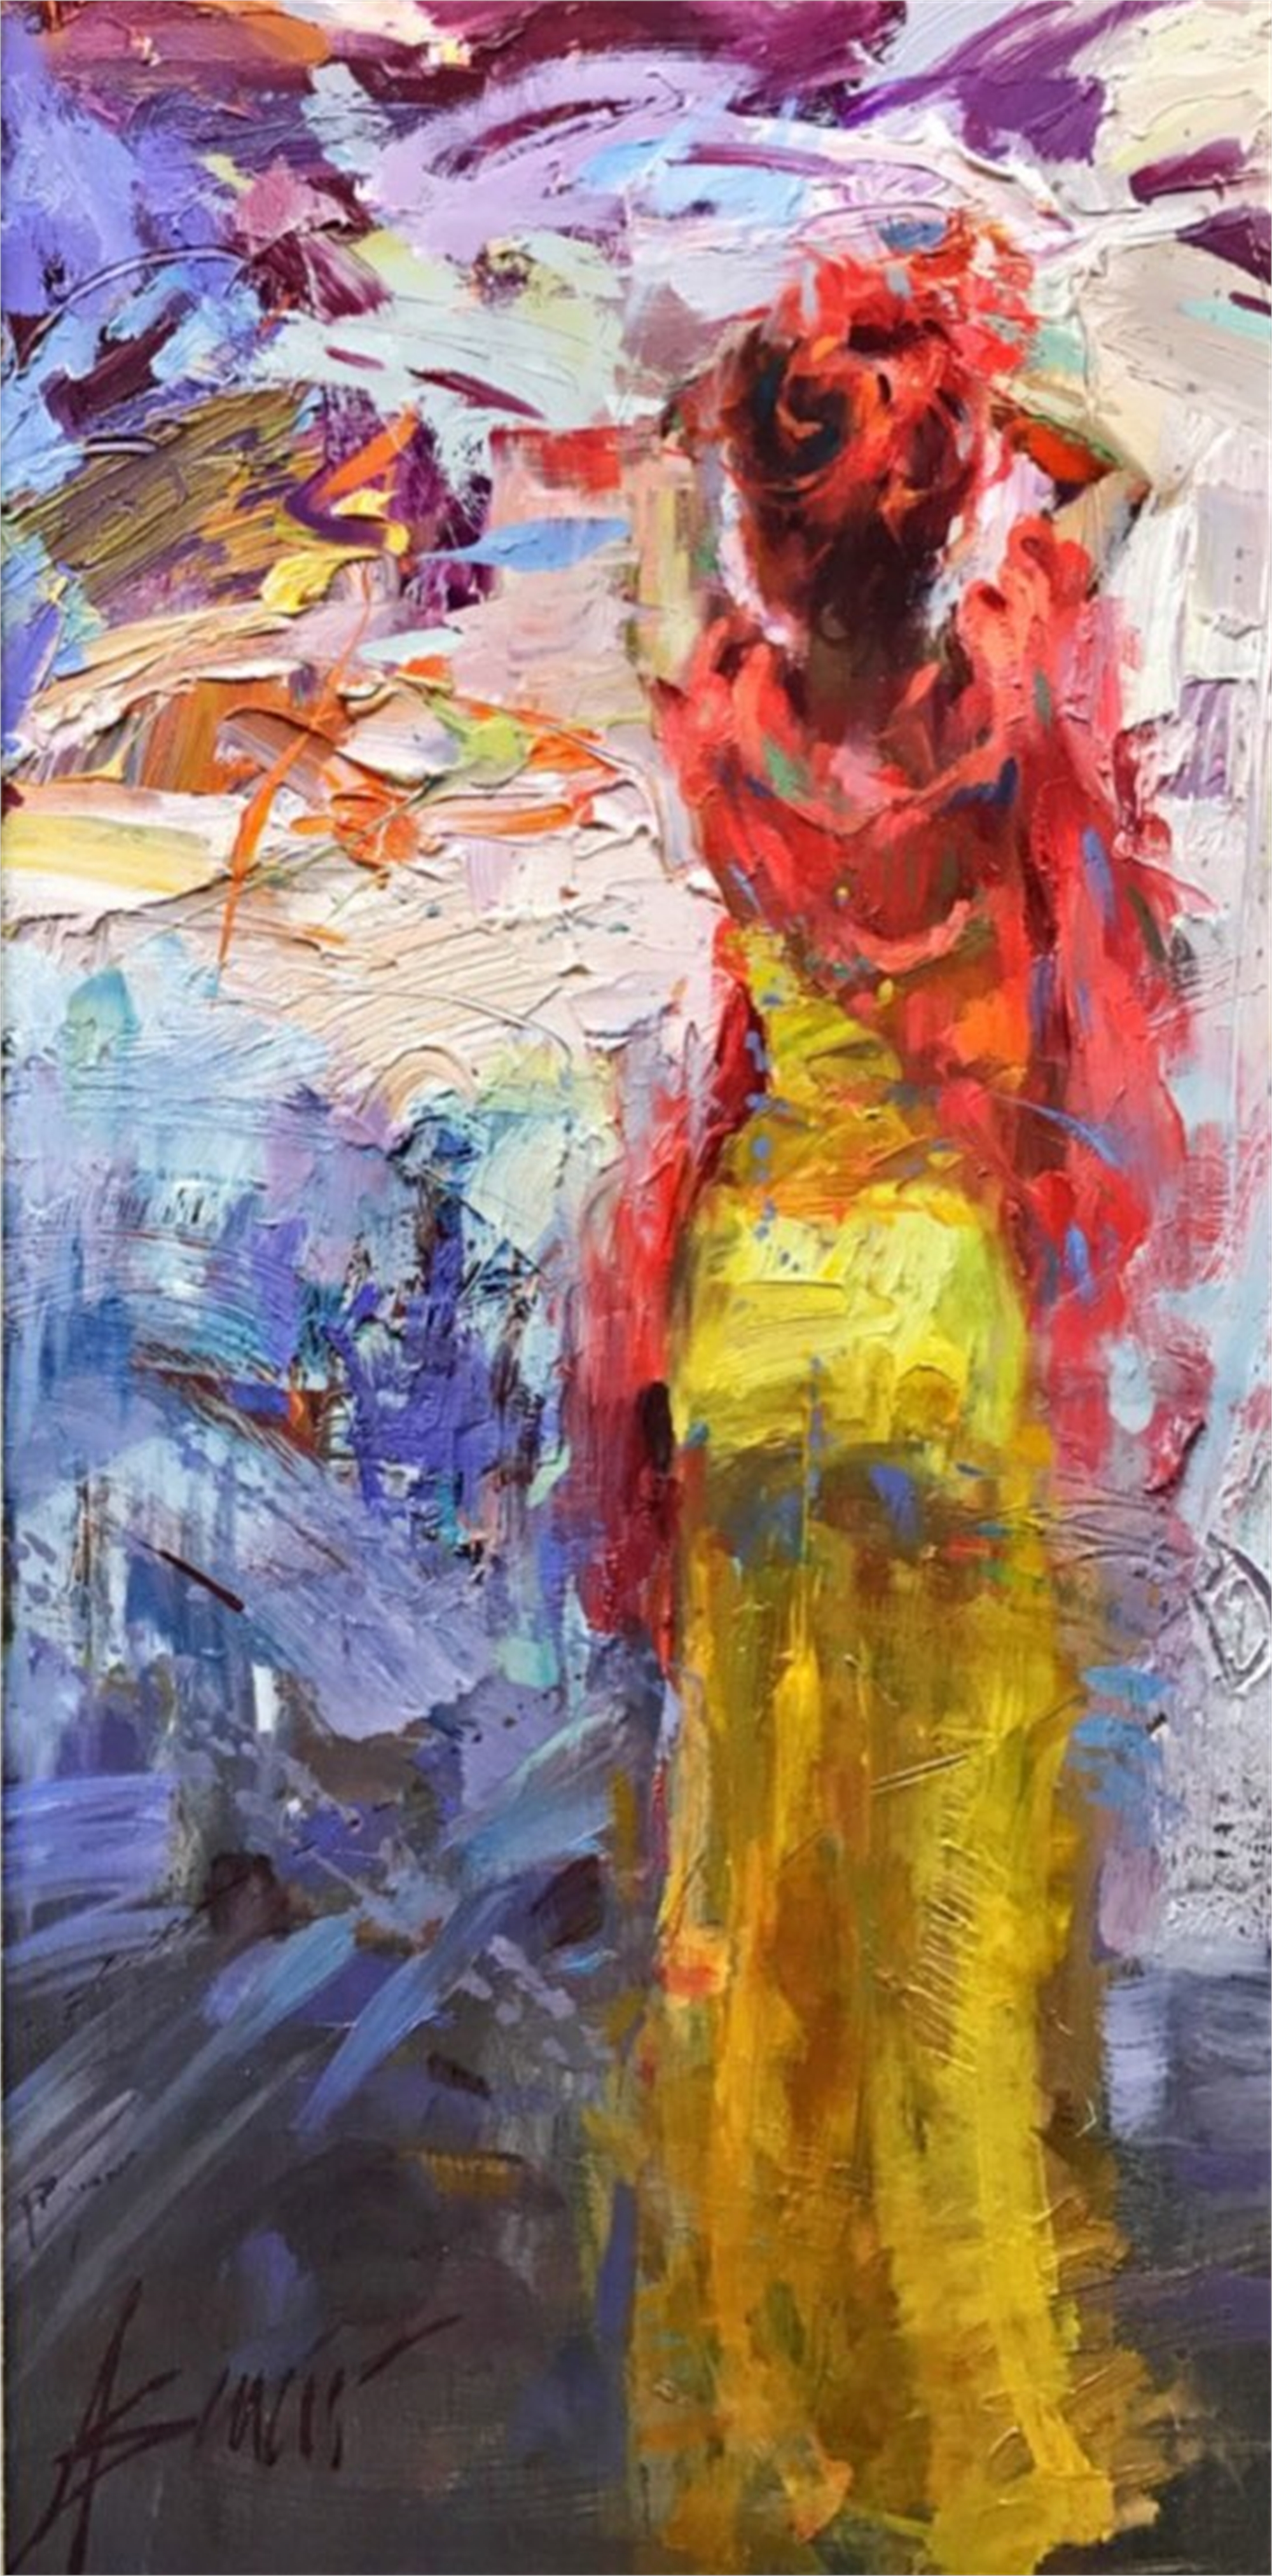 Original by Henry Asensio